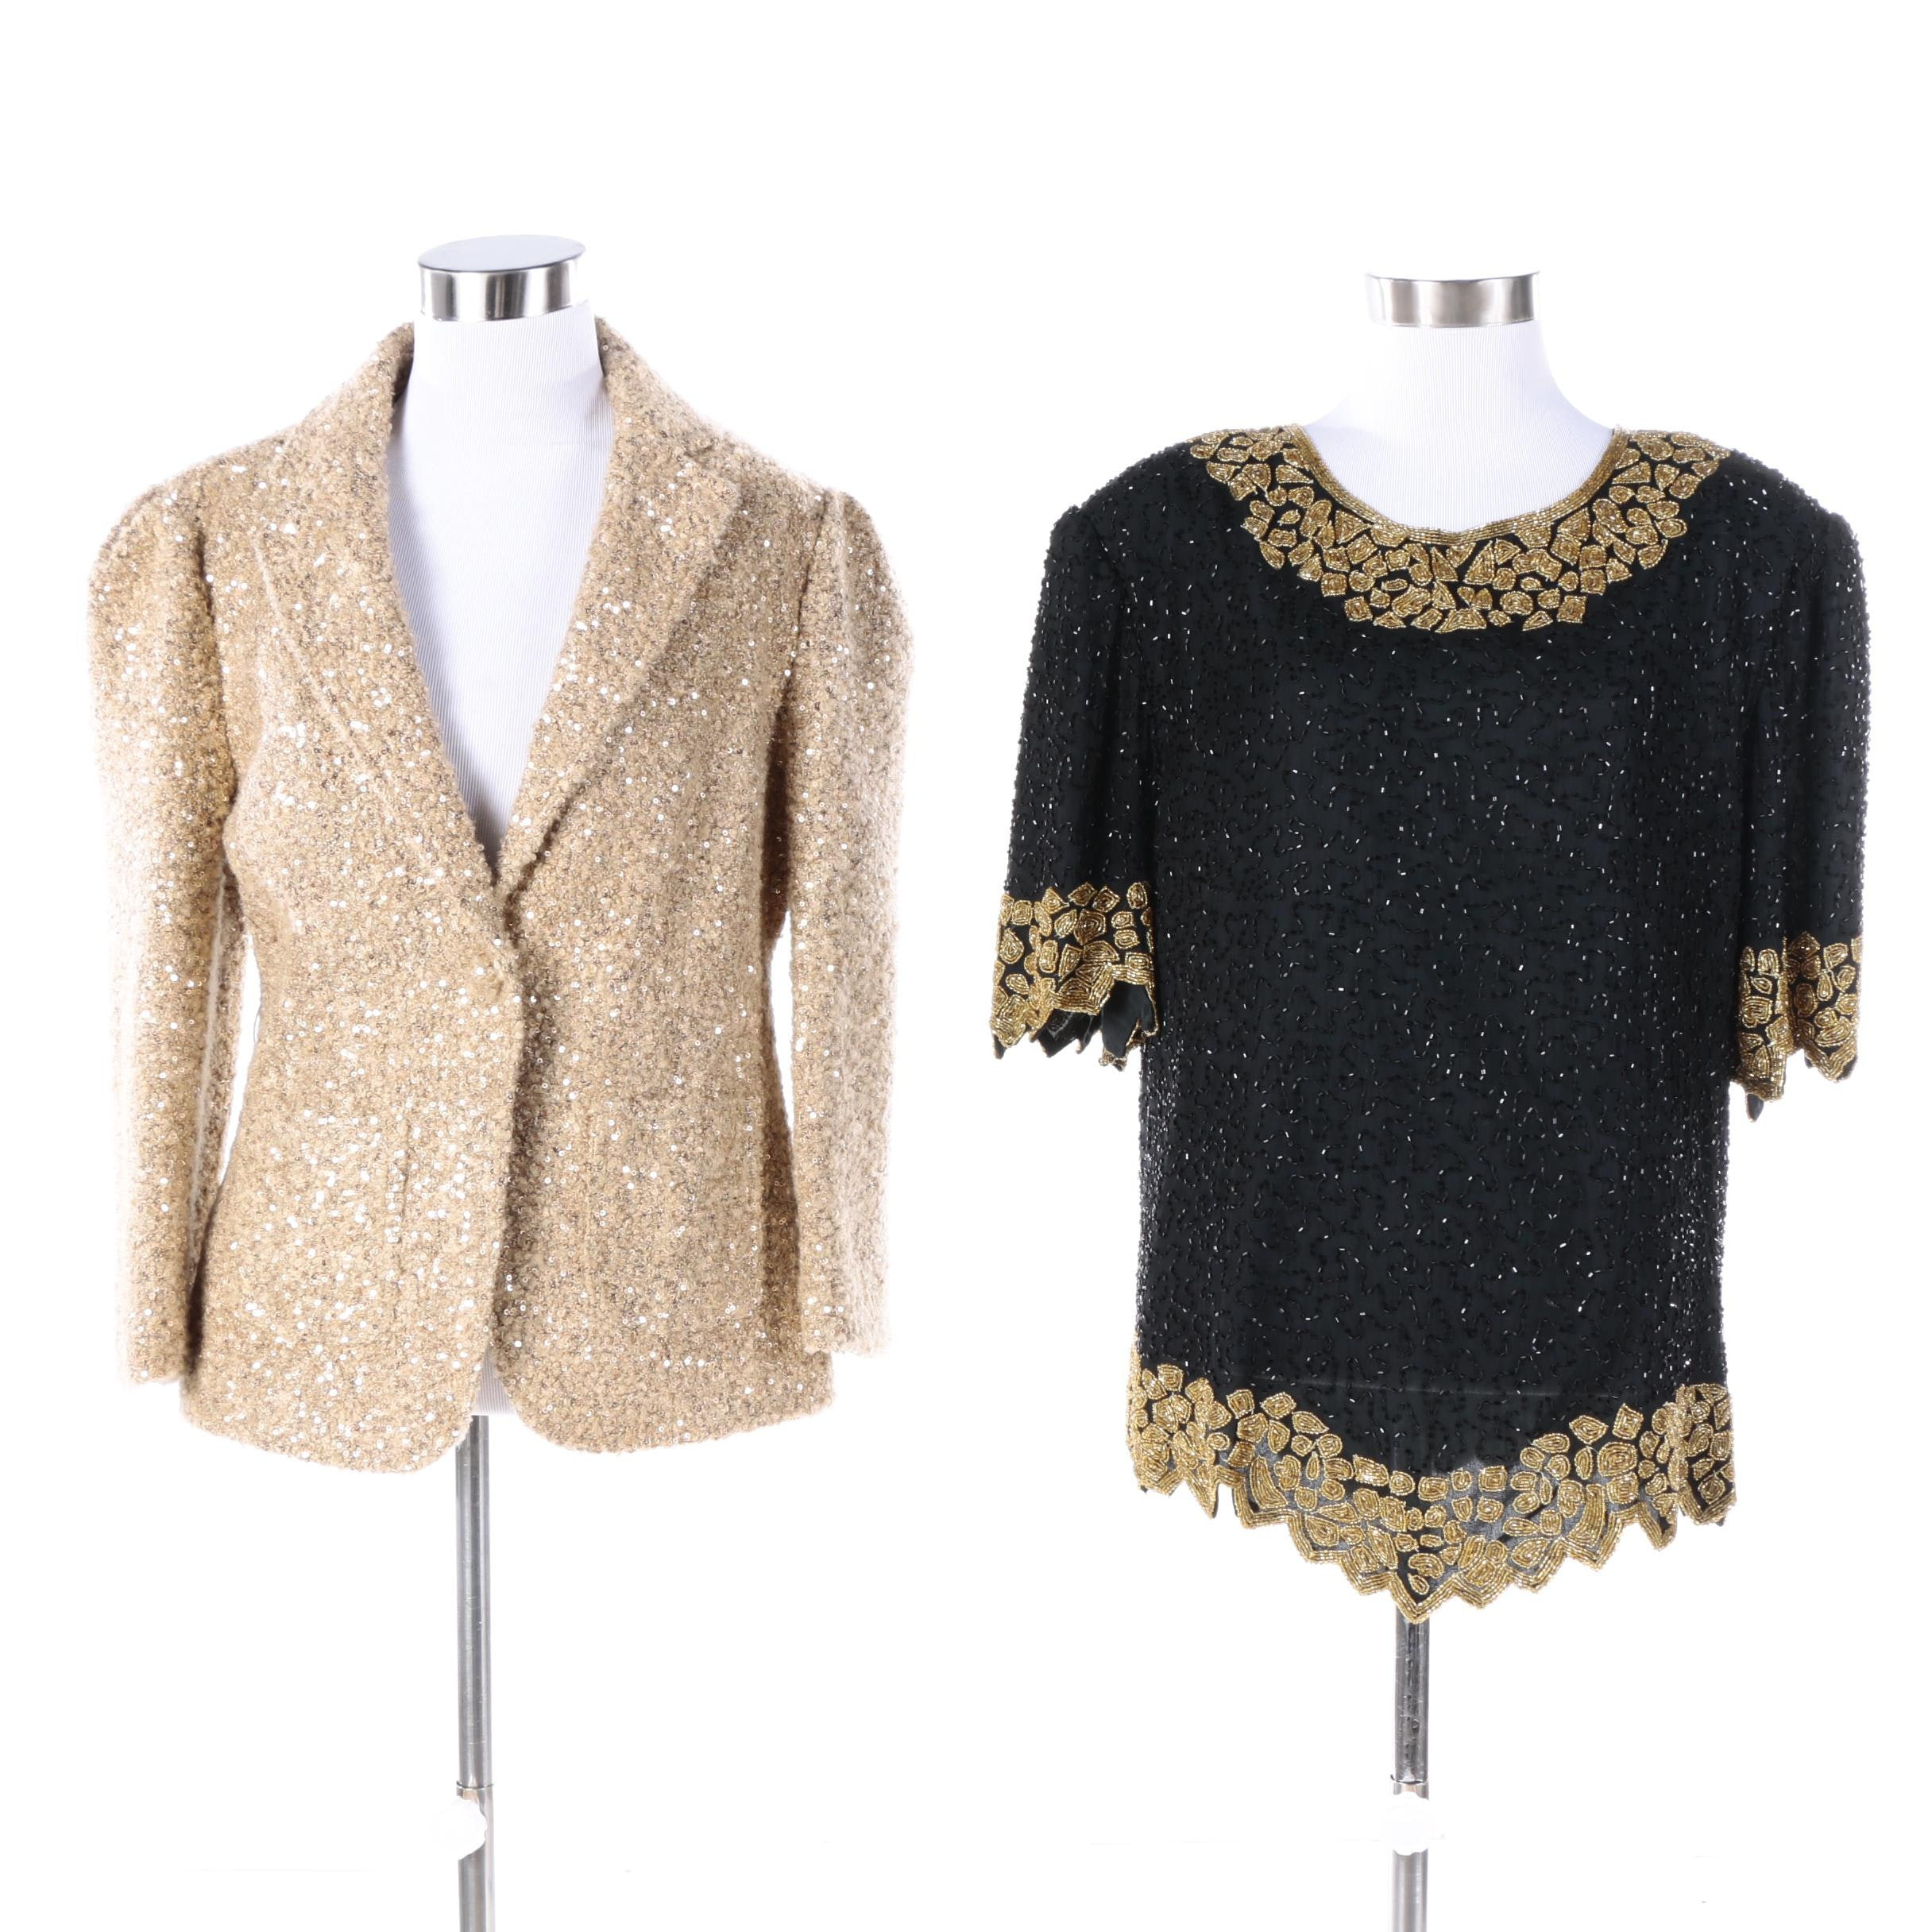 Embellished Jacket and Top Including Laurence Kazar